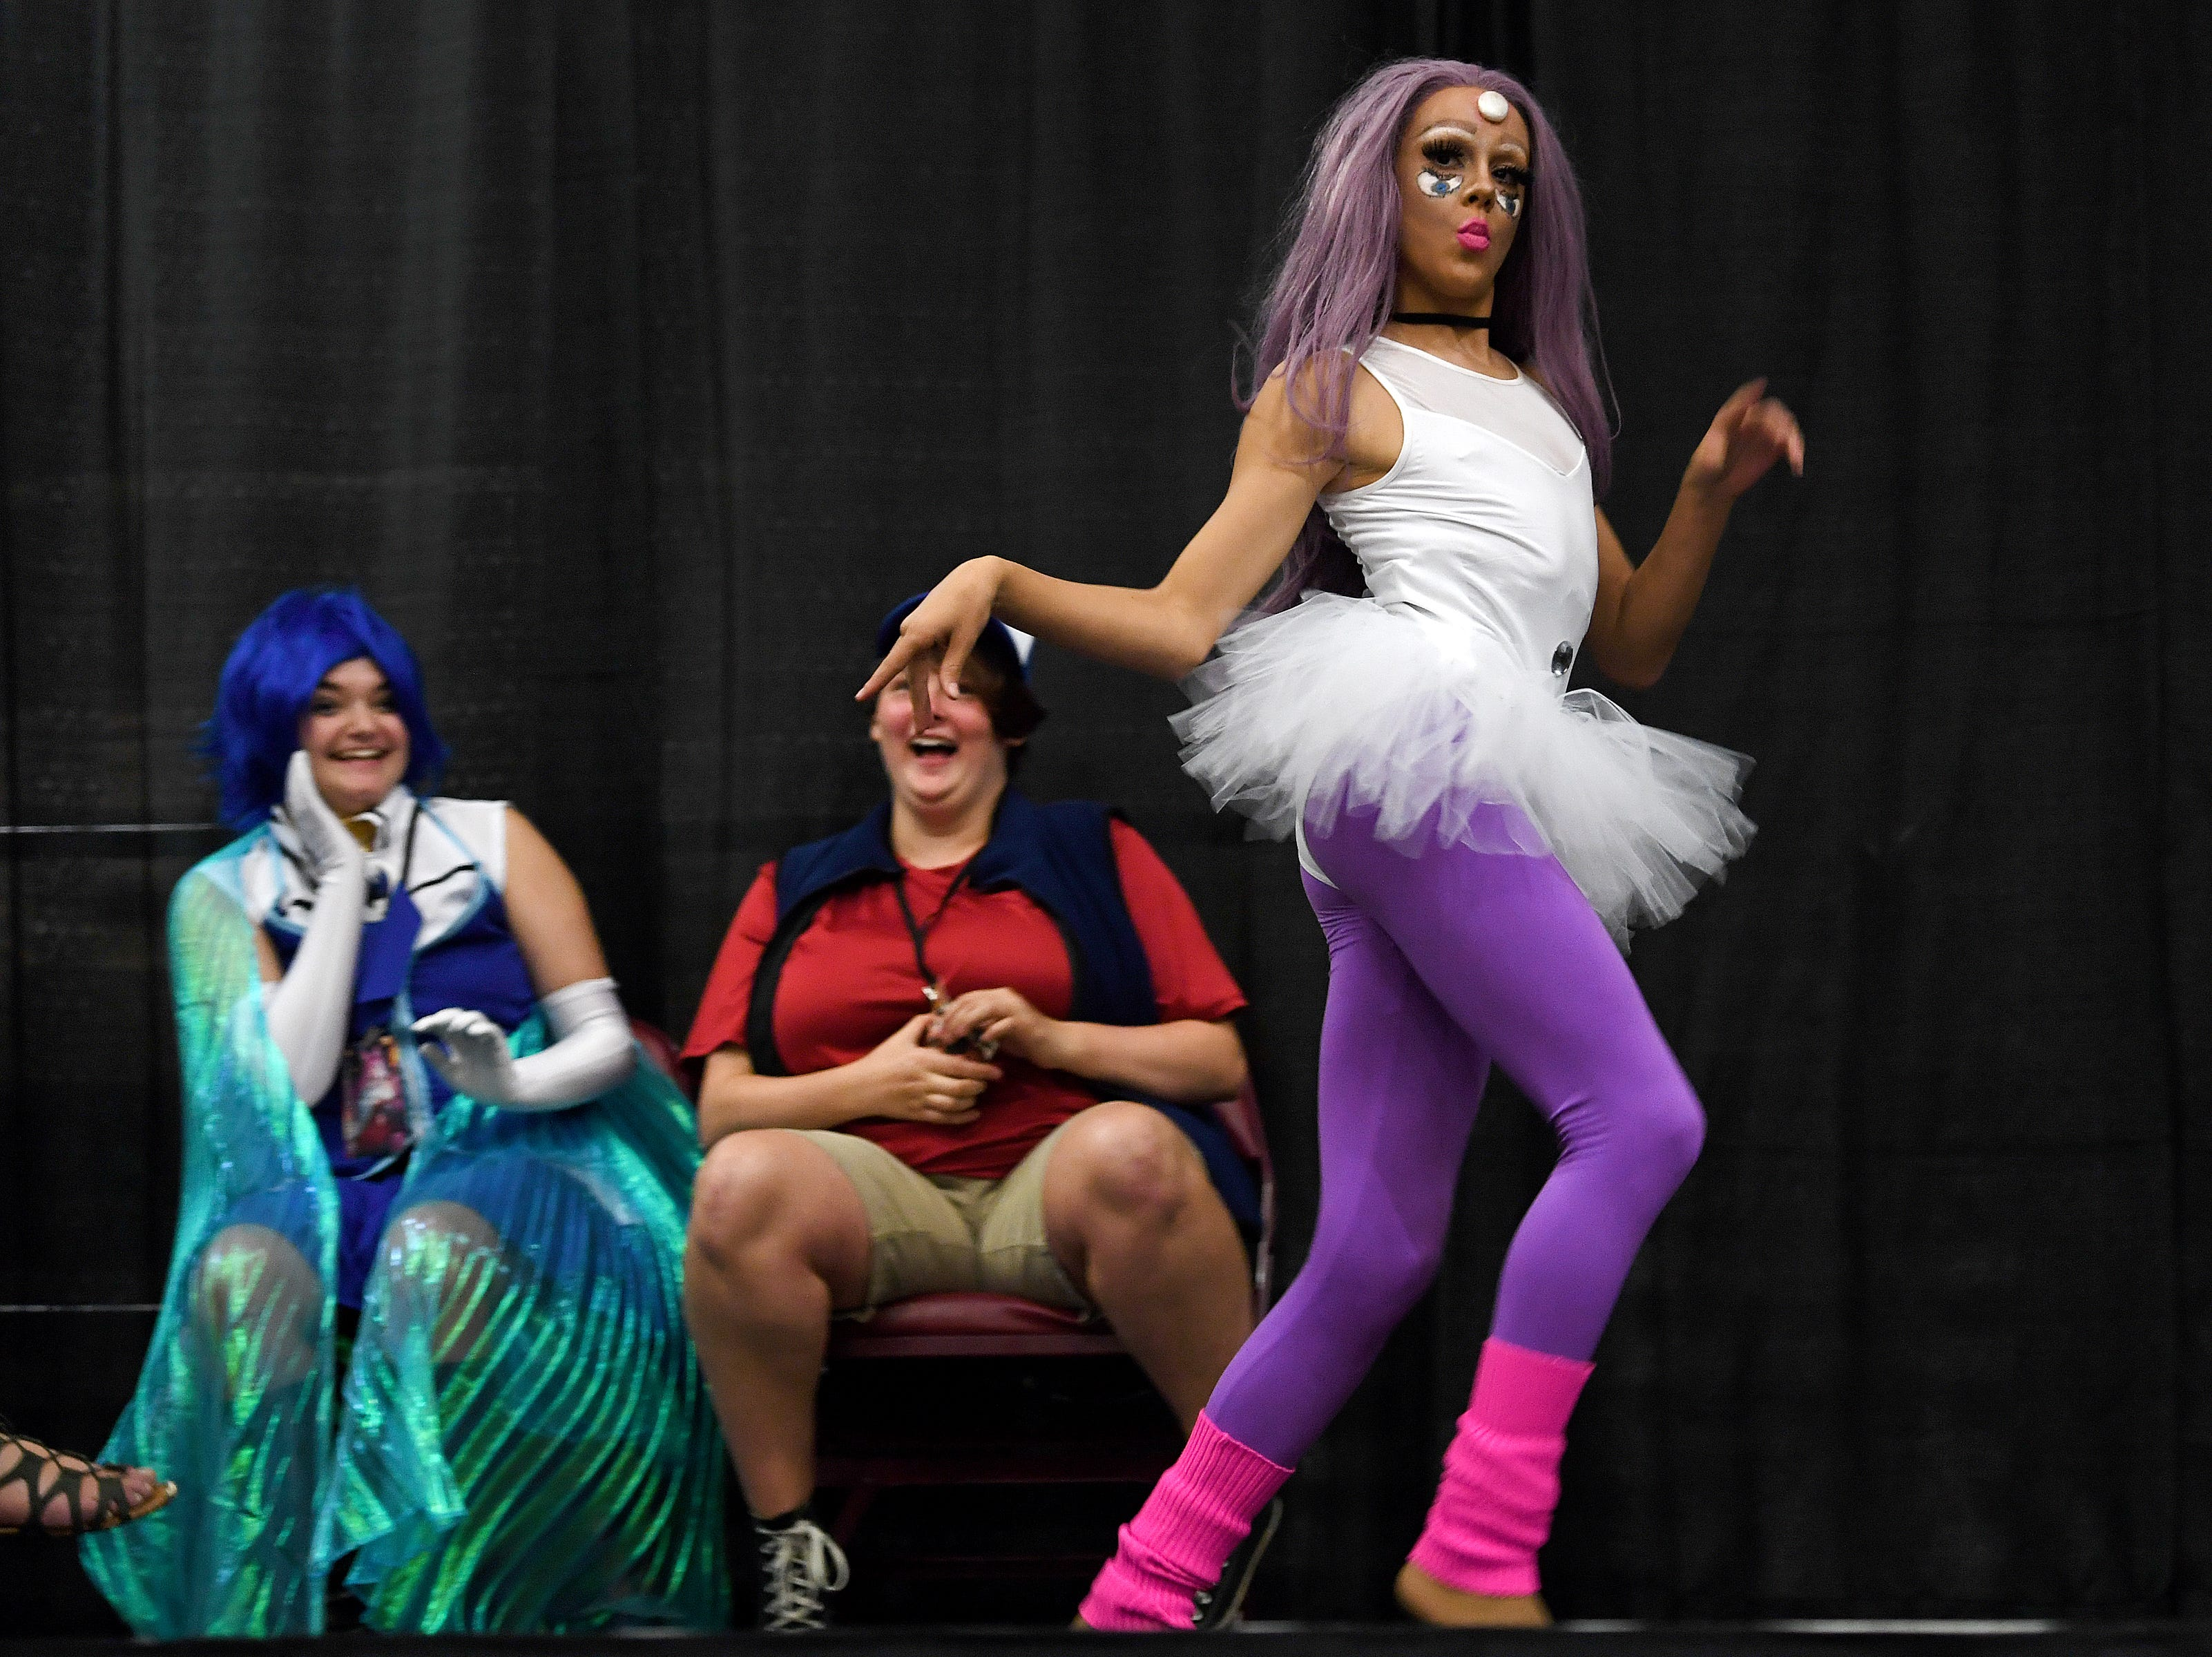 Gage Alexander Filipovic performs in a Cosplay lipsync battle during the Asheville Anime Regional Convention at the U.S. Cellular Center on Saturday, July 28, 2018.